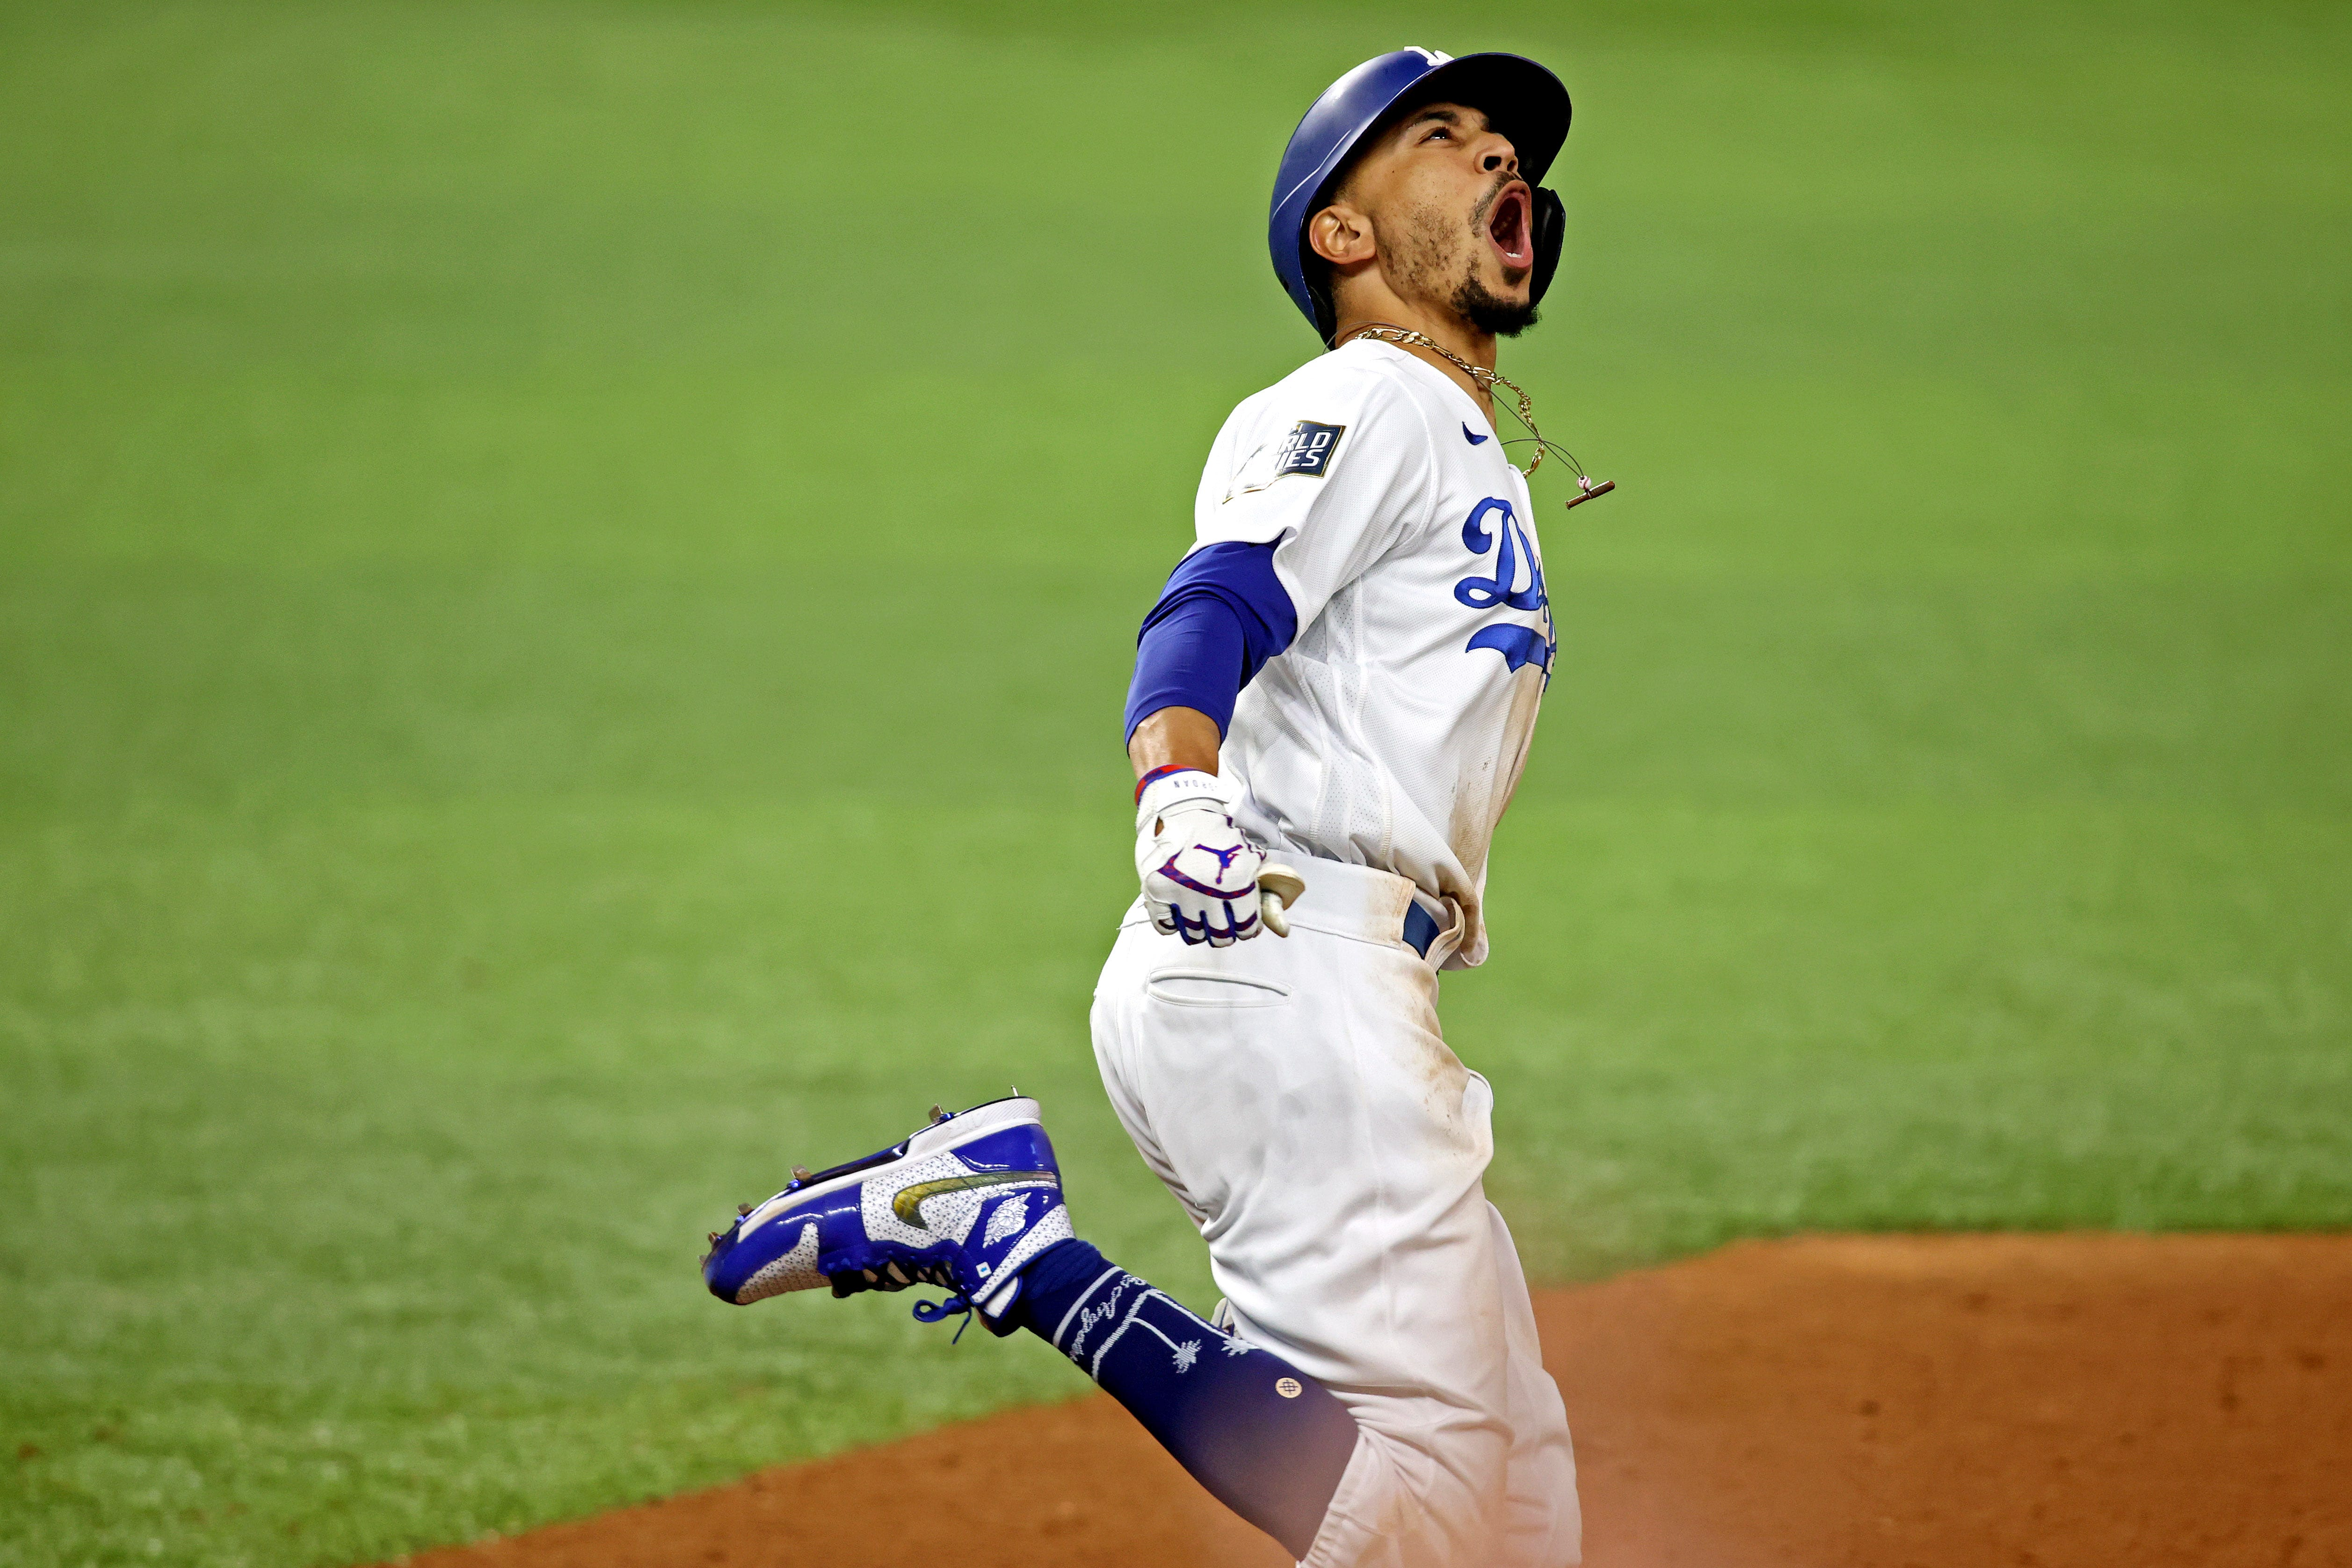 Dodgers defeat Rays in Game 6 to win first World Series title since 1988